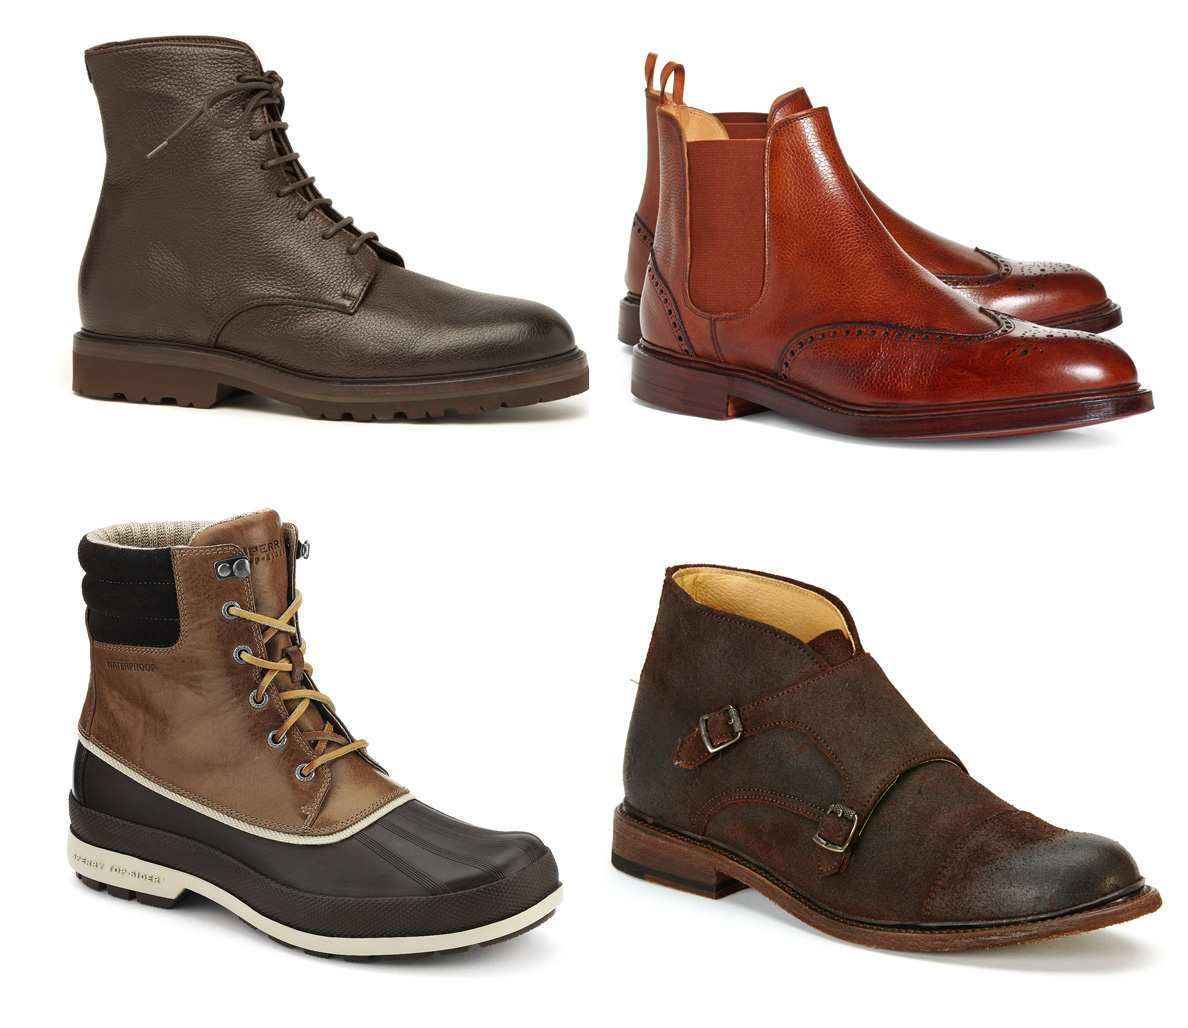 Top 20 Best Work Boots For Men – Step Into Durability That Lasts Top 20 Best Work Boots For Men – Step Into Durability That Lasts new pics